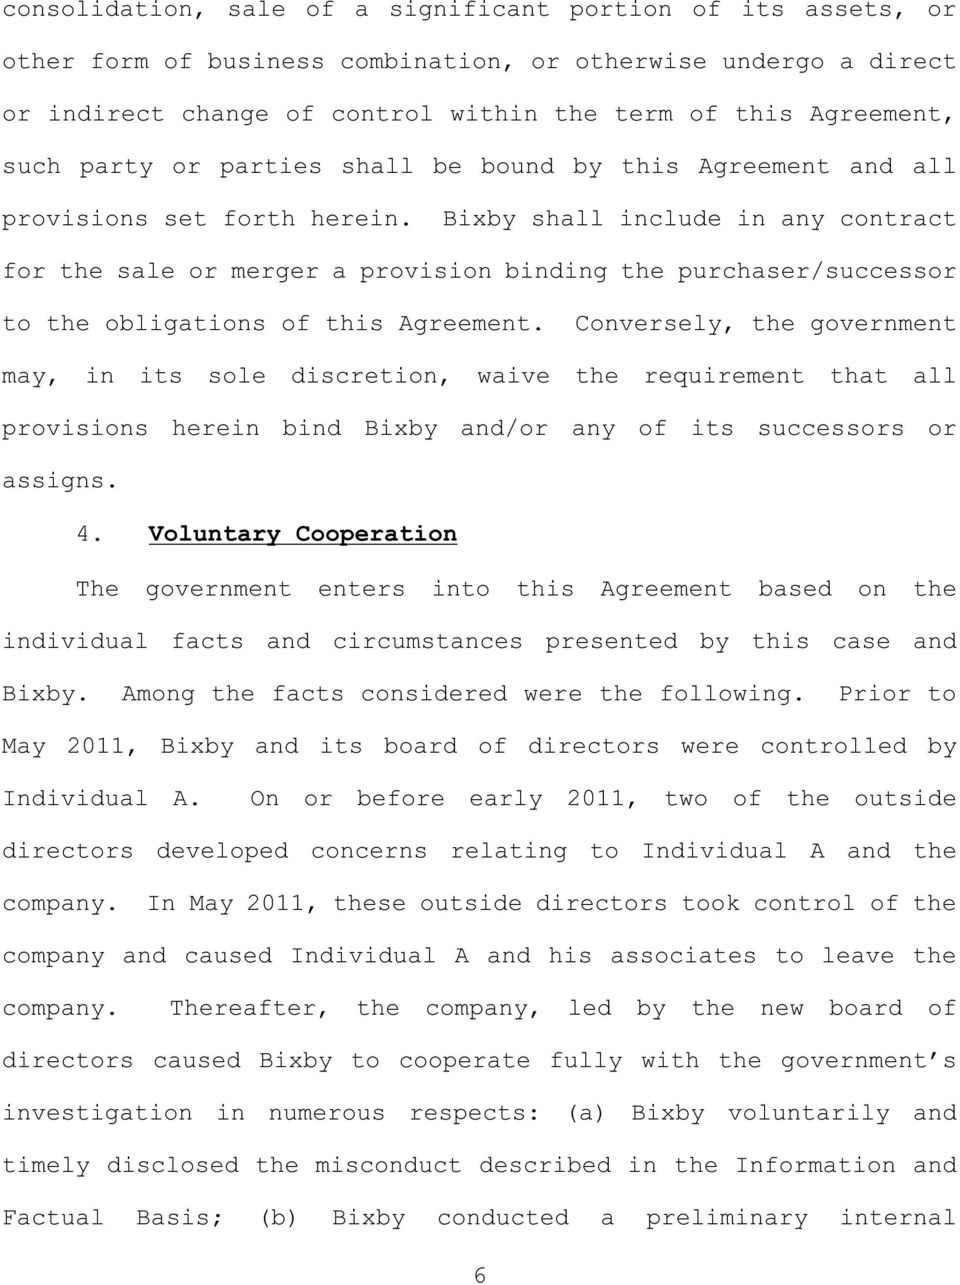 Bixby shall include in any contract for the sale or merger a provision binding the purchaser/successor to the obligations of this Agreement.